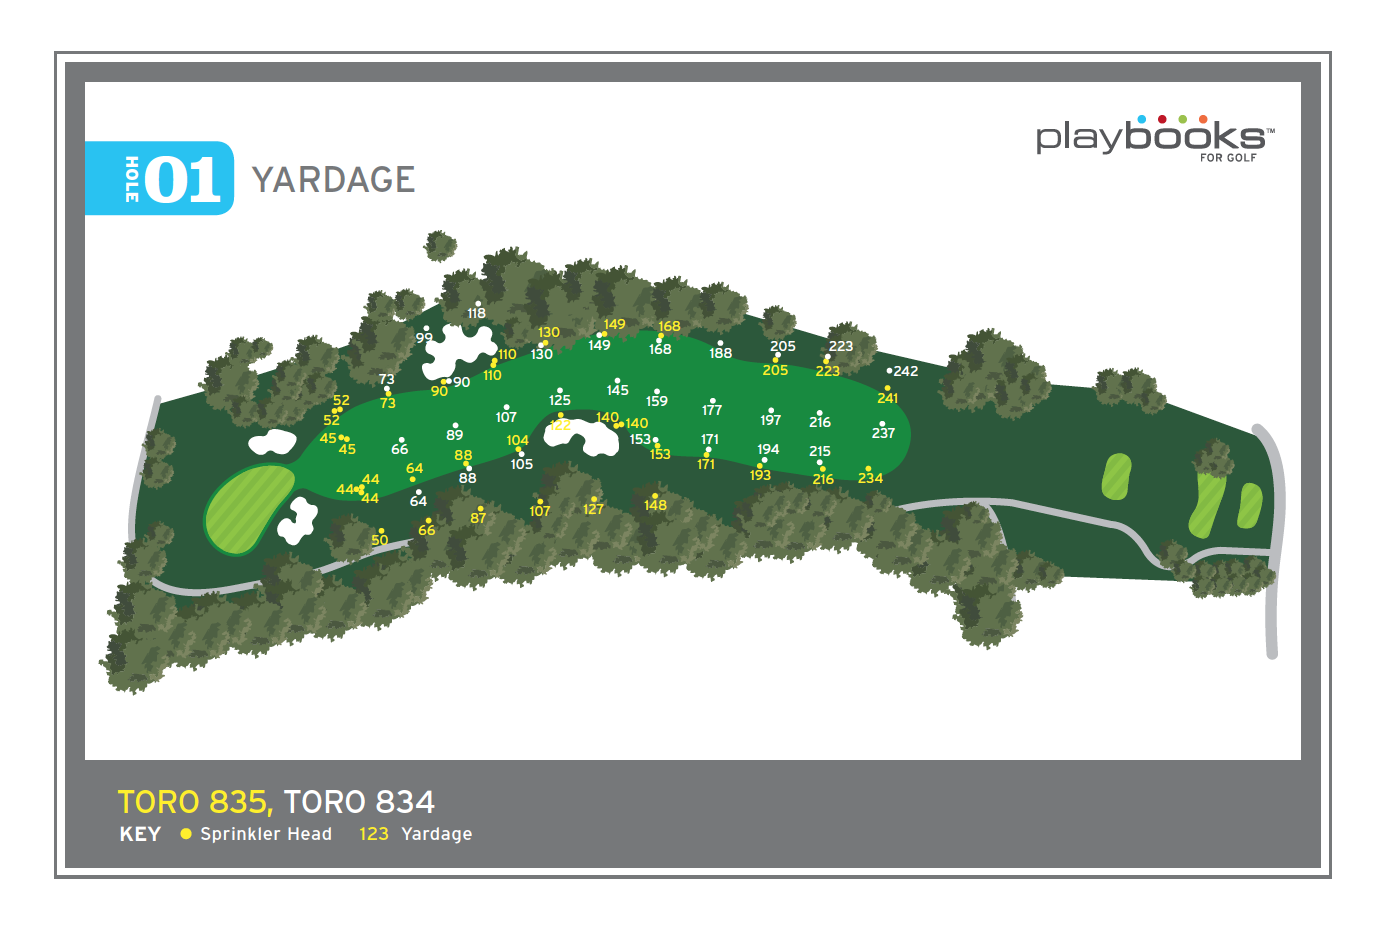 Playbooks For Golf Network